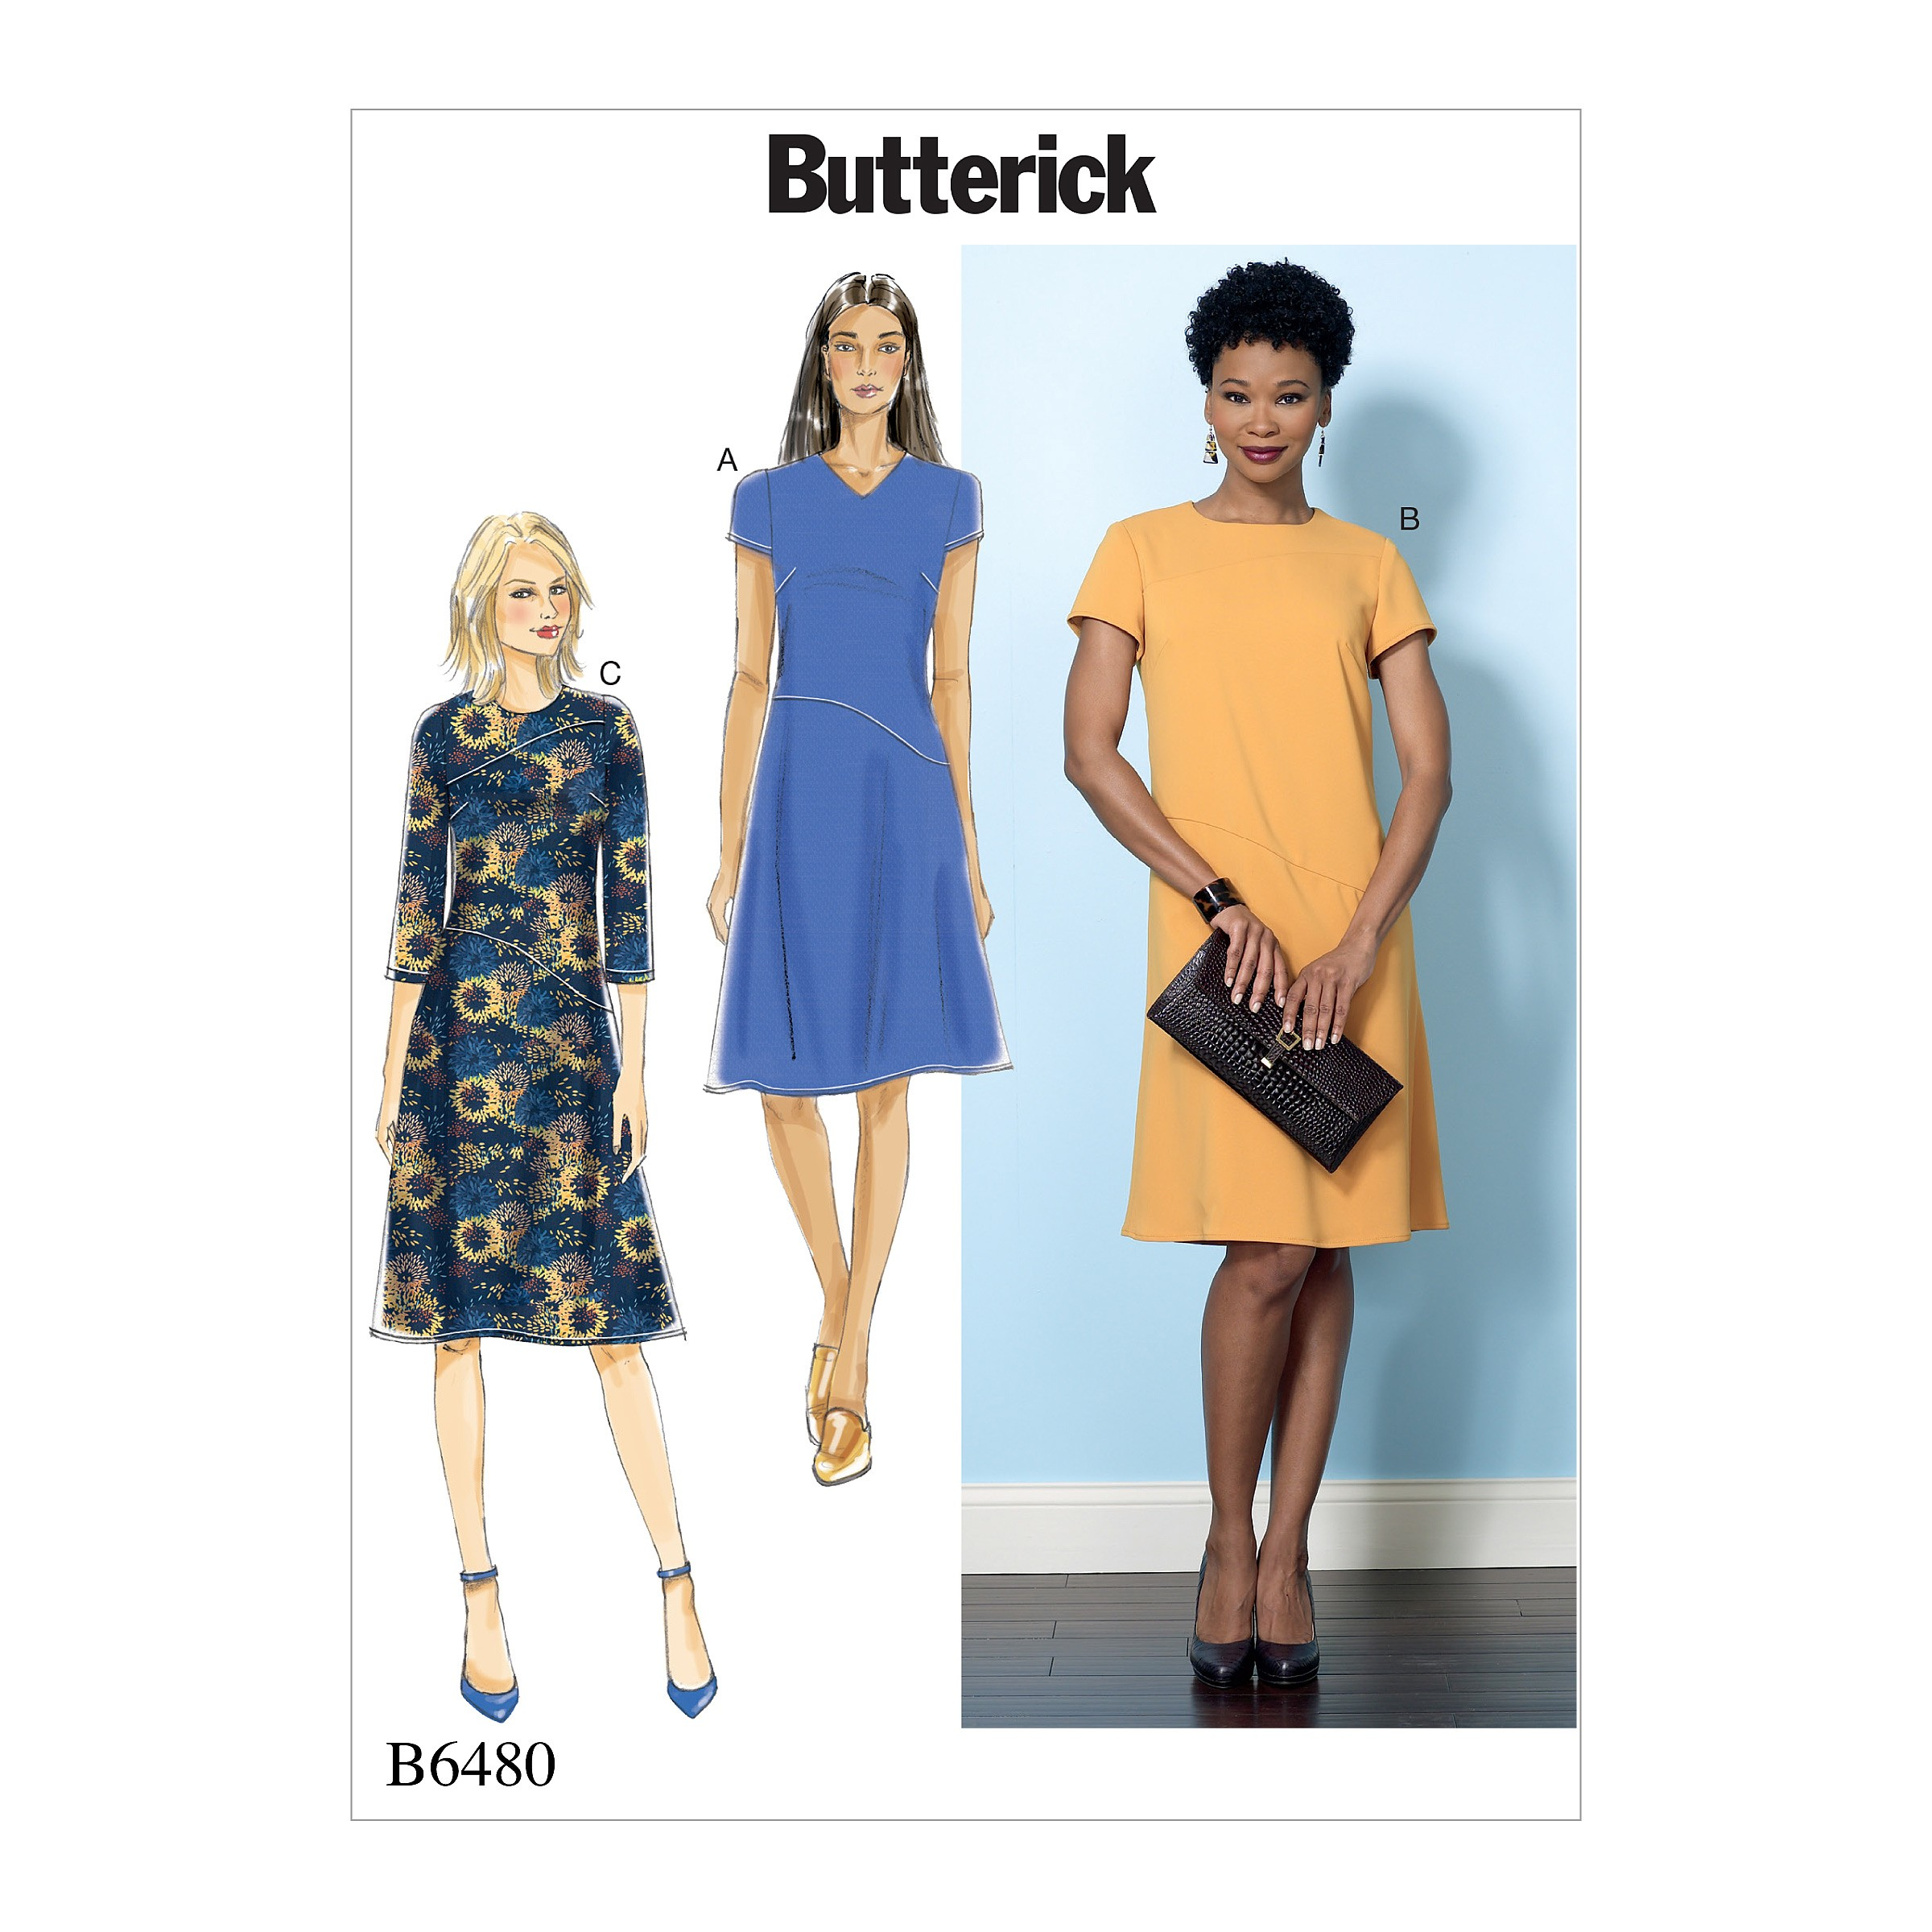 Butterick Sewing Pattern 6480 Misses' Fitted Dress Neck & Sleeve Variations